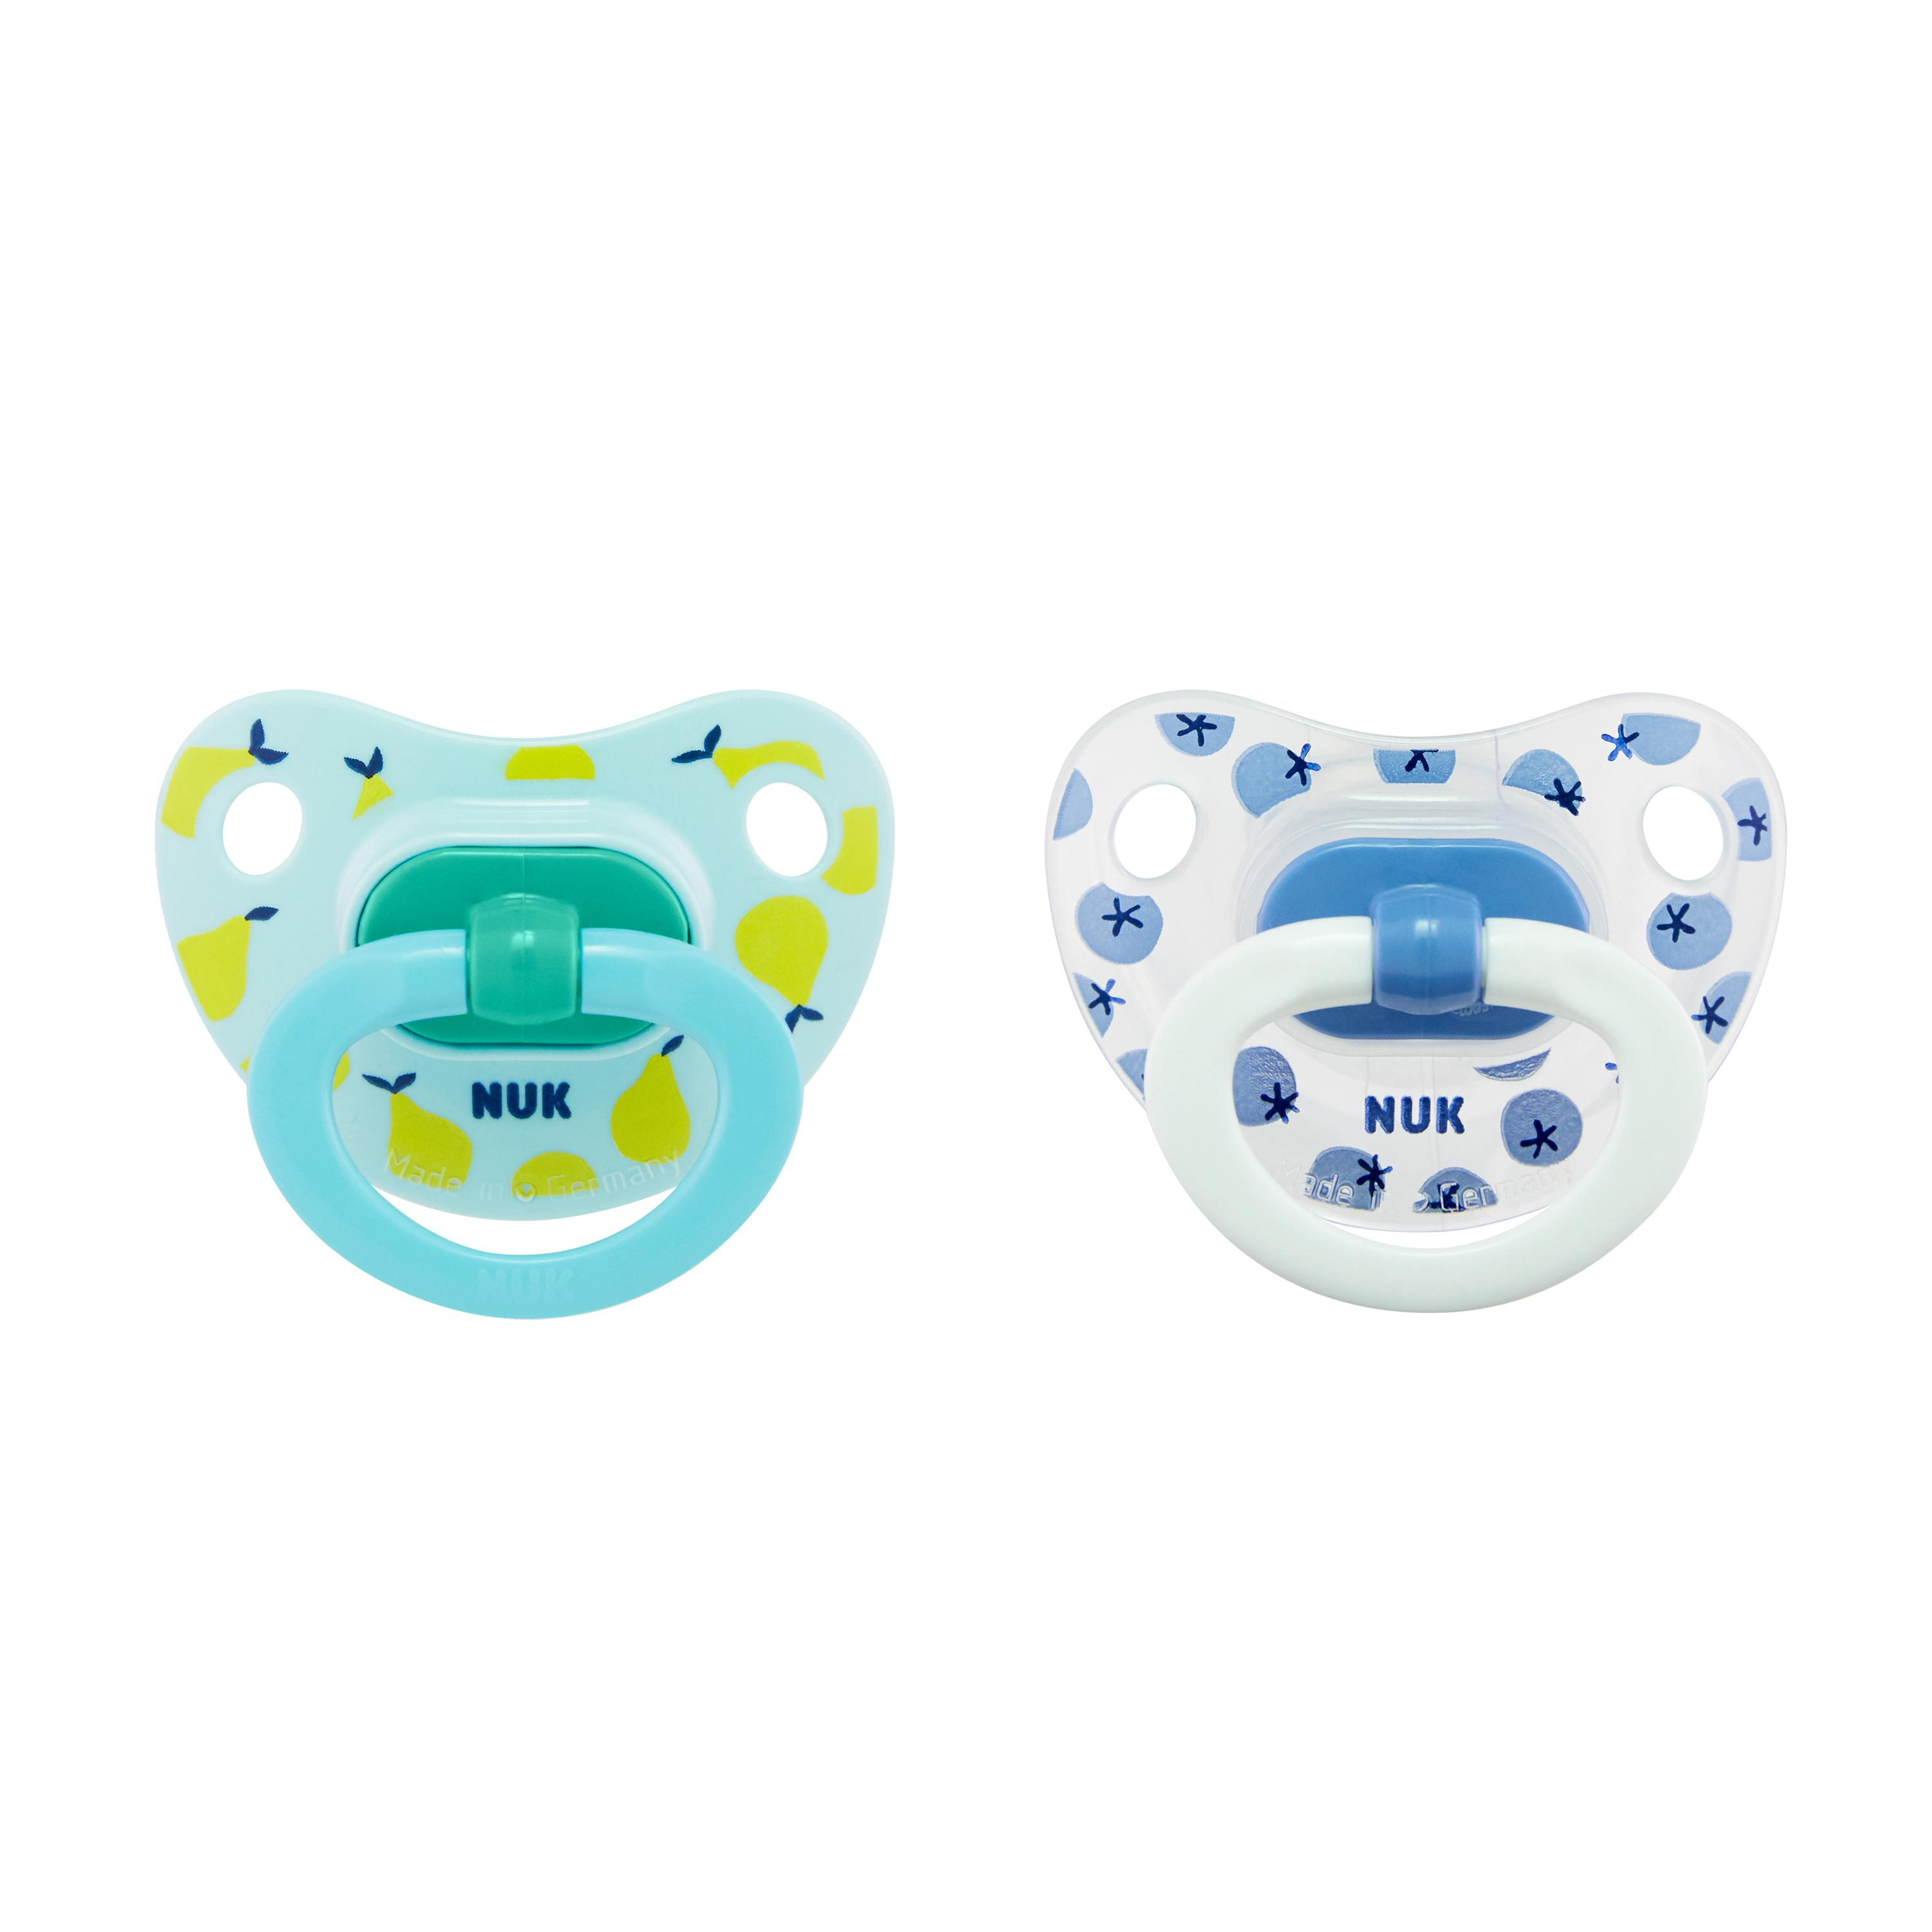 NUK® Orthodontic Pacifiers, 6-18 Months, 2-Pack Product Image 1 of 7